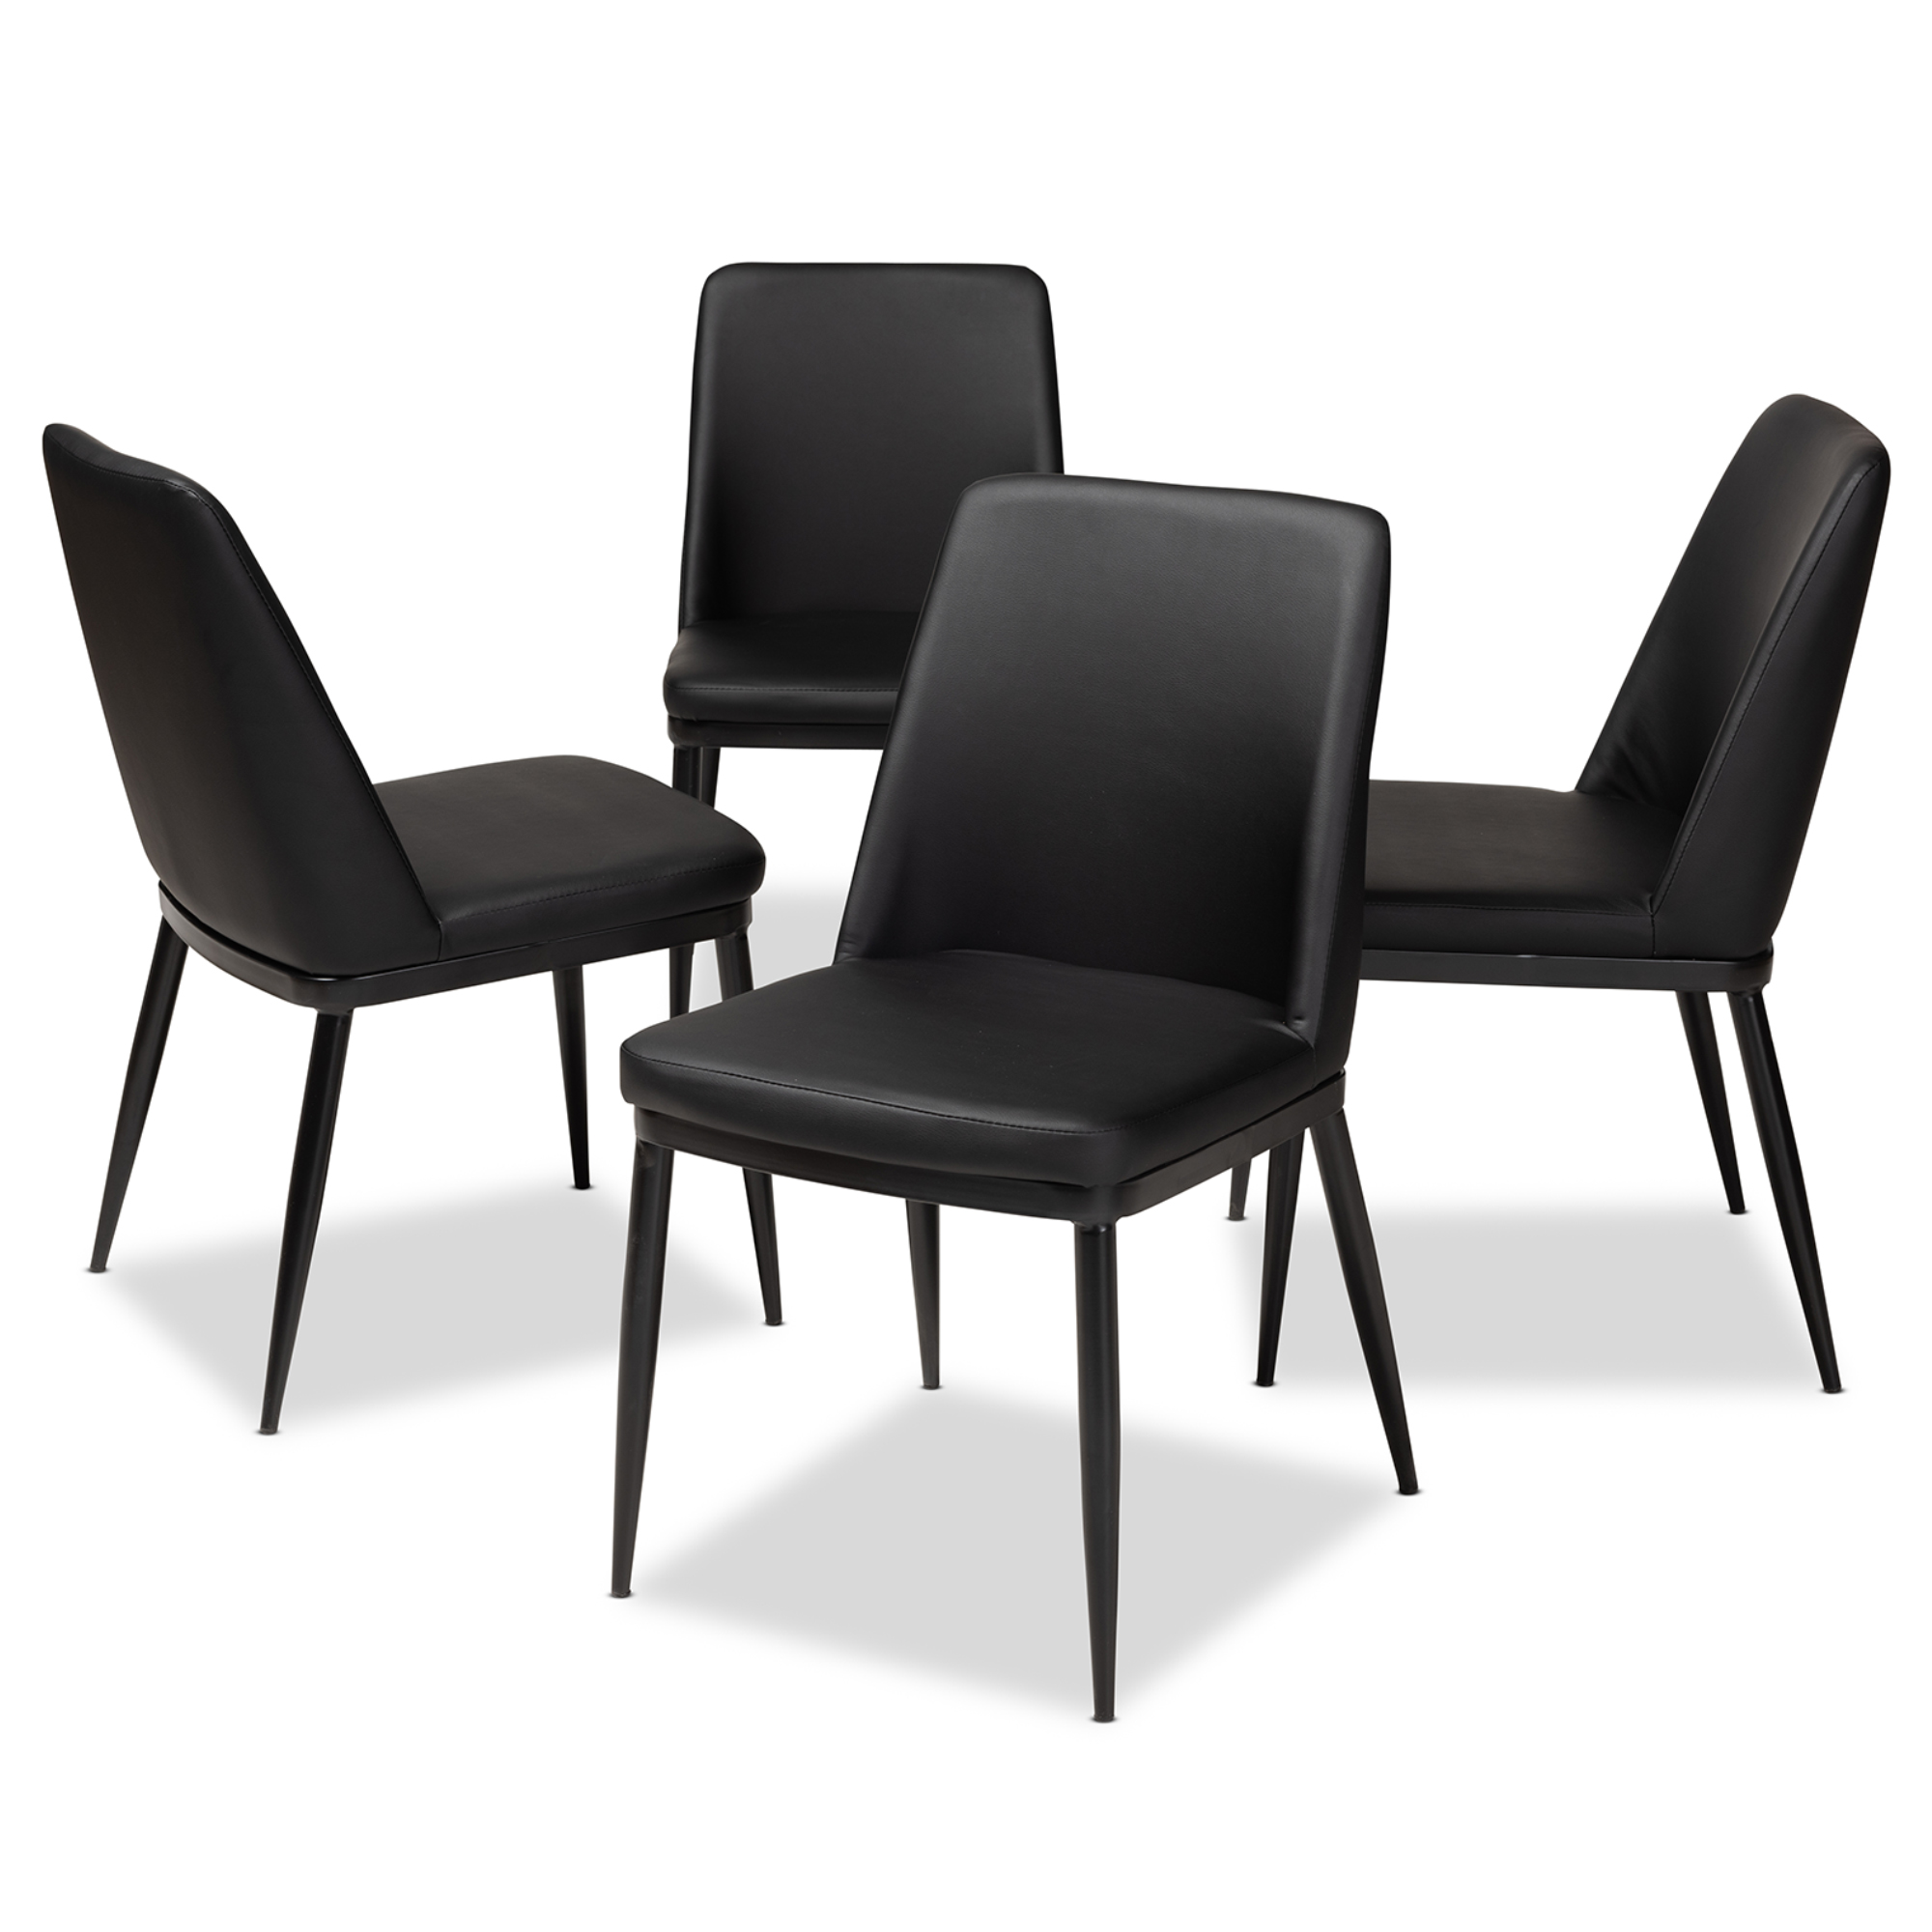 baxton studio darcell modern and contemporary black faux leather upholstered dining chair set of 4. Black Bedroom Furniture Sets. Home Design Ideas